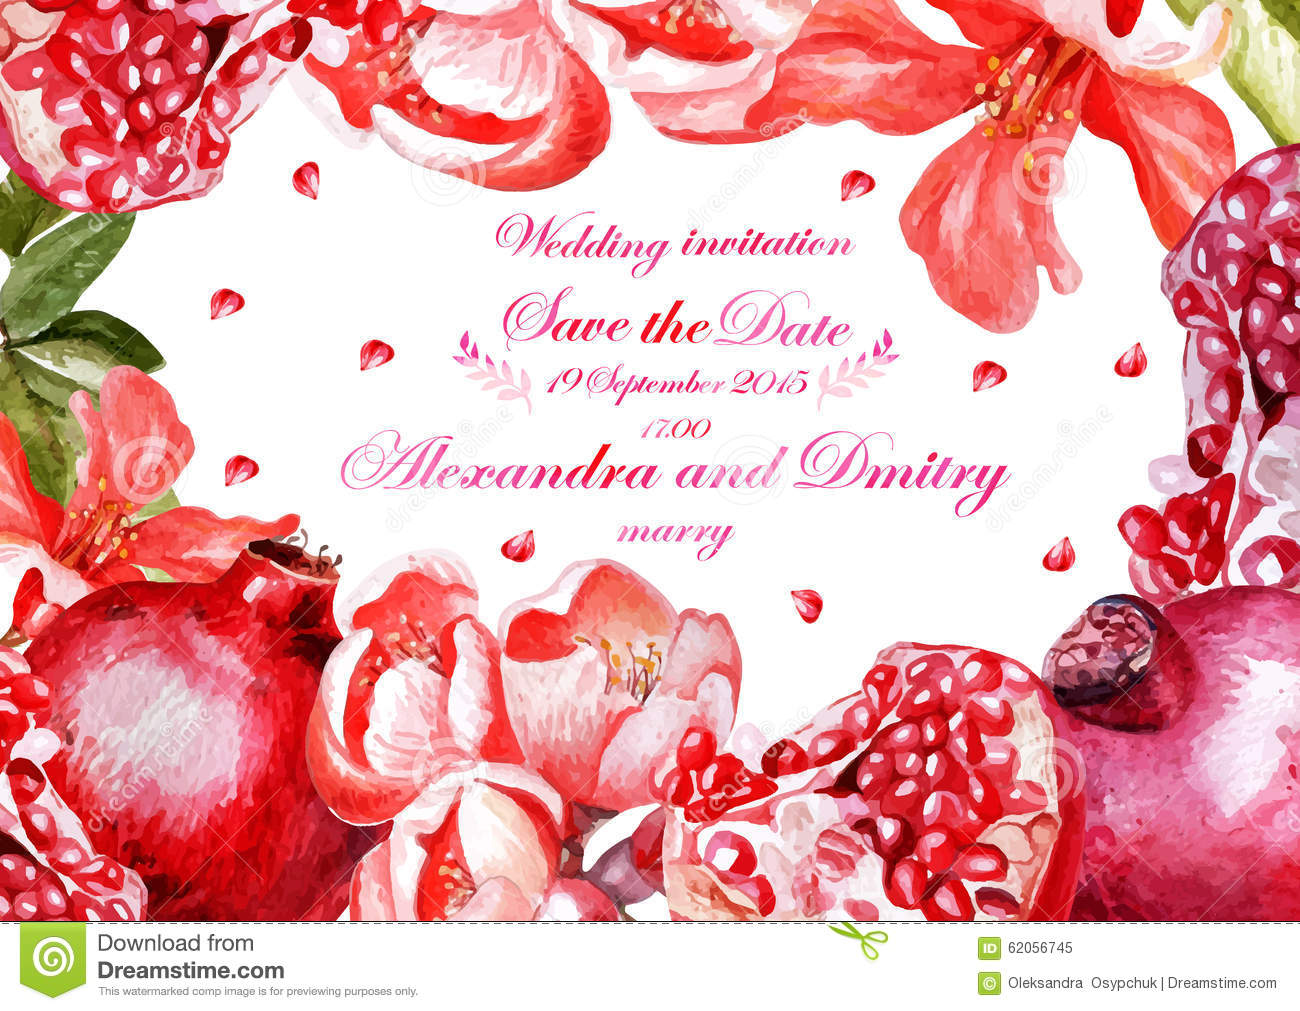 Pomegranate Wedding Invitations: Watercolor Wedding Card With Pomegranates Stock Vector